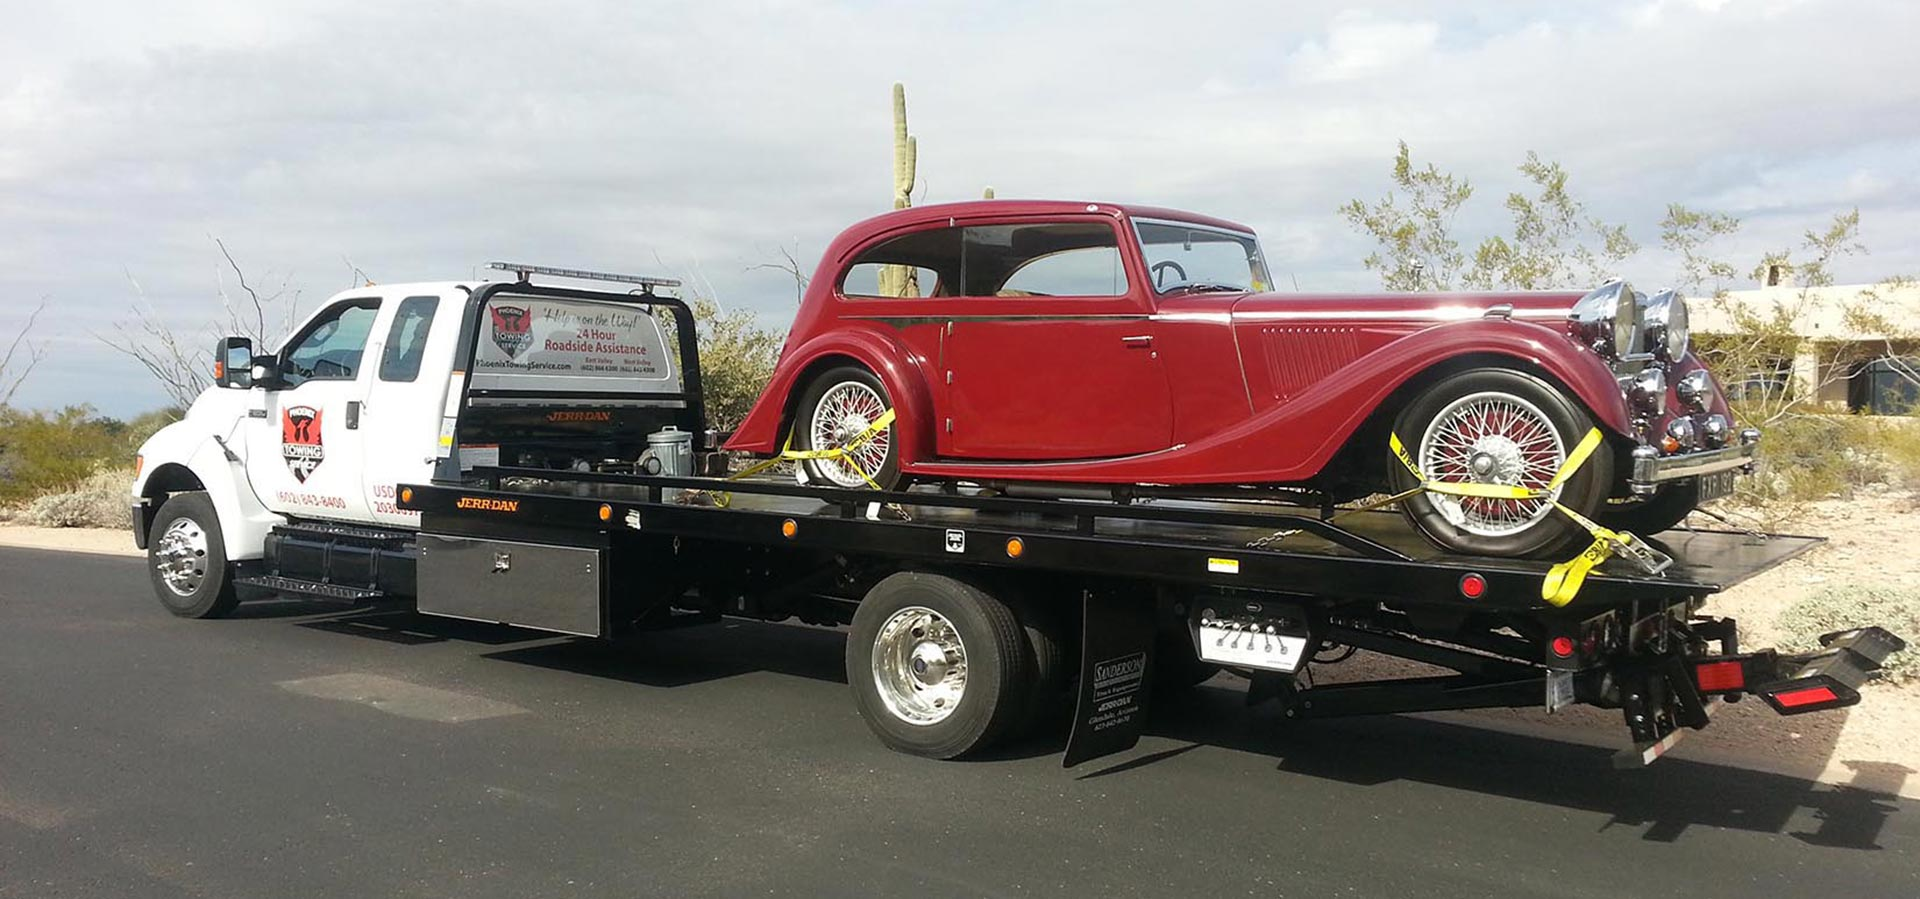 Photo of Phoenix Towing Service truck towing a exotic red vintage car.